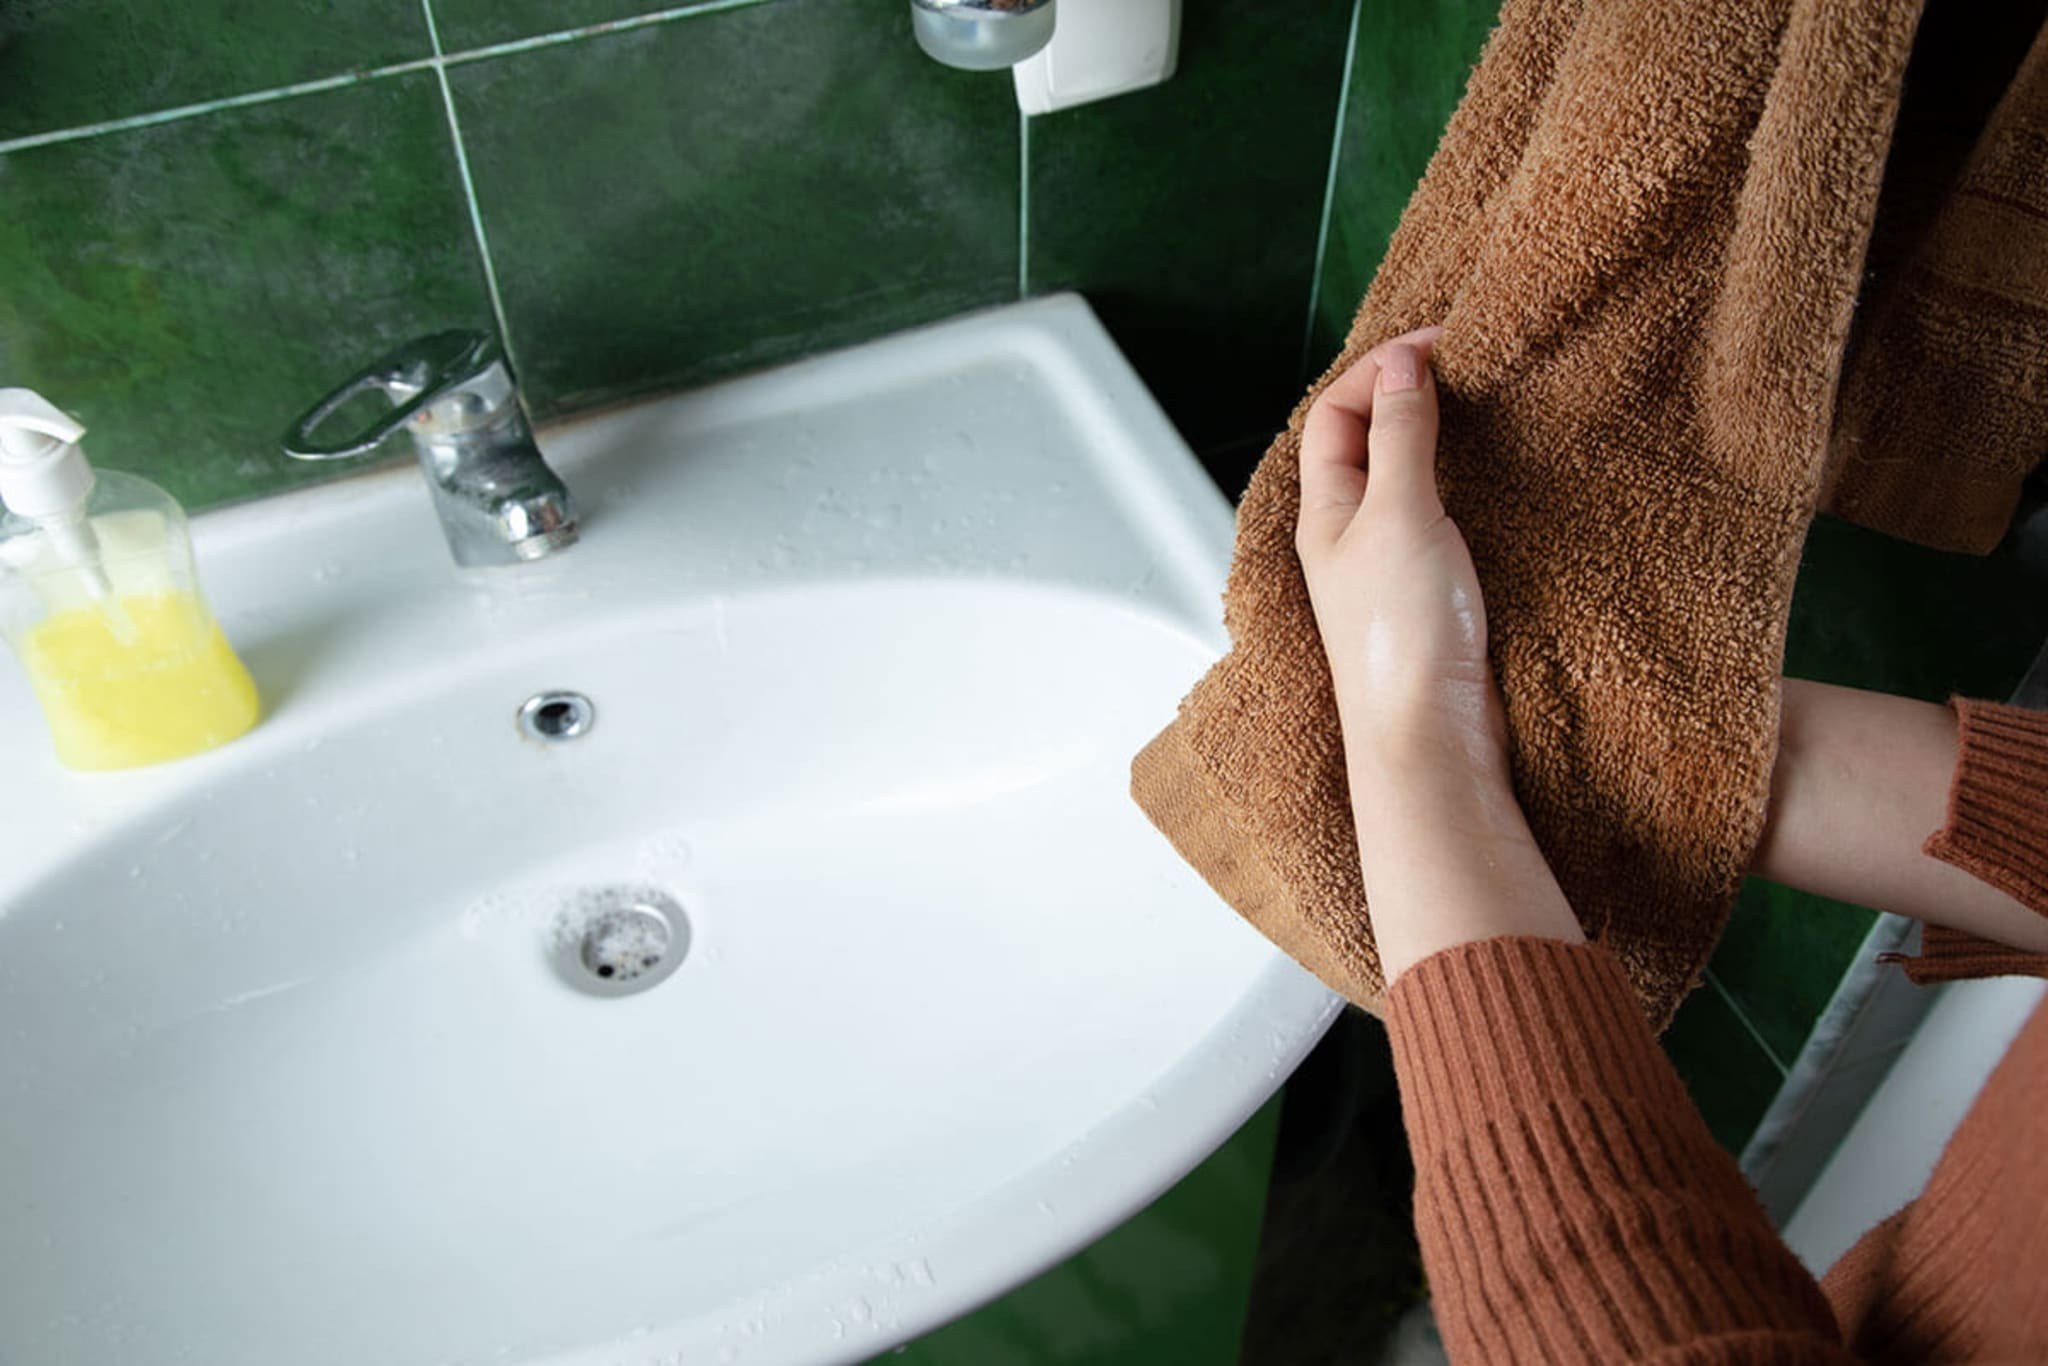 Hand-towels-have-germs